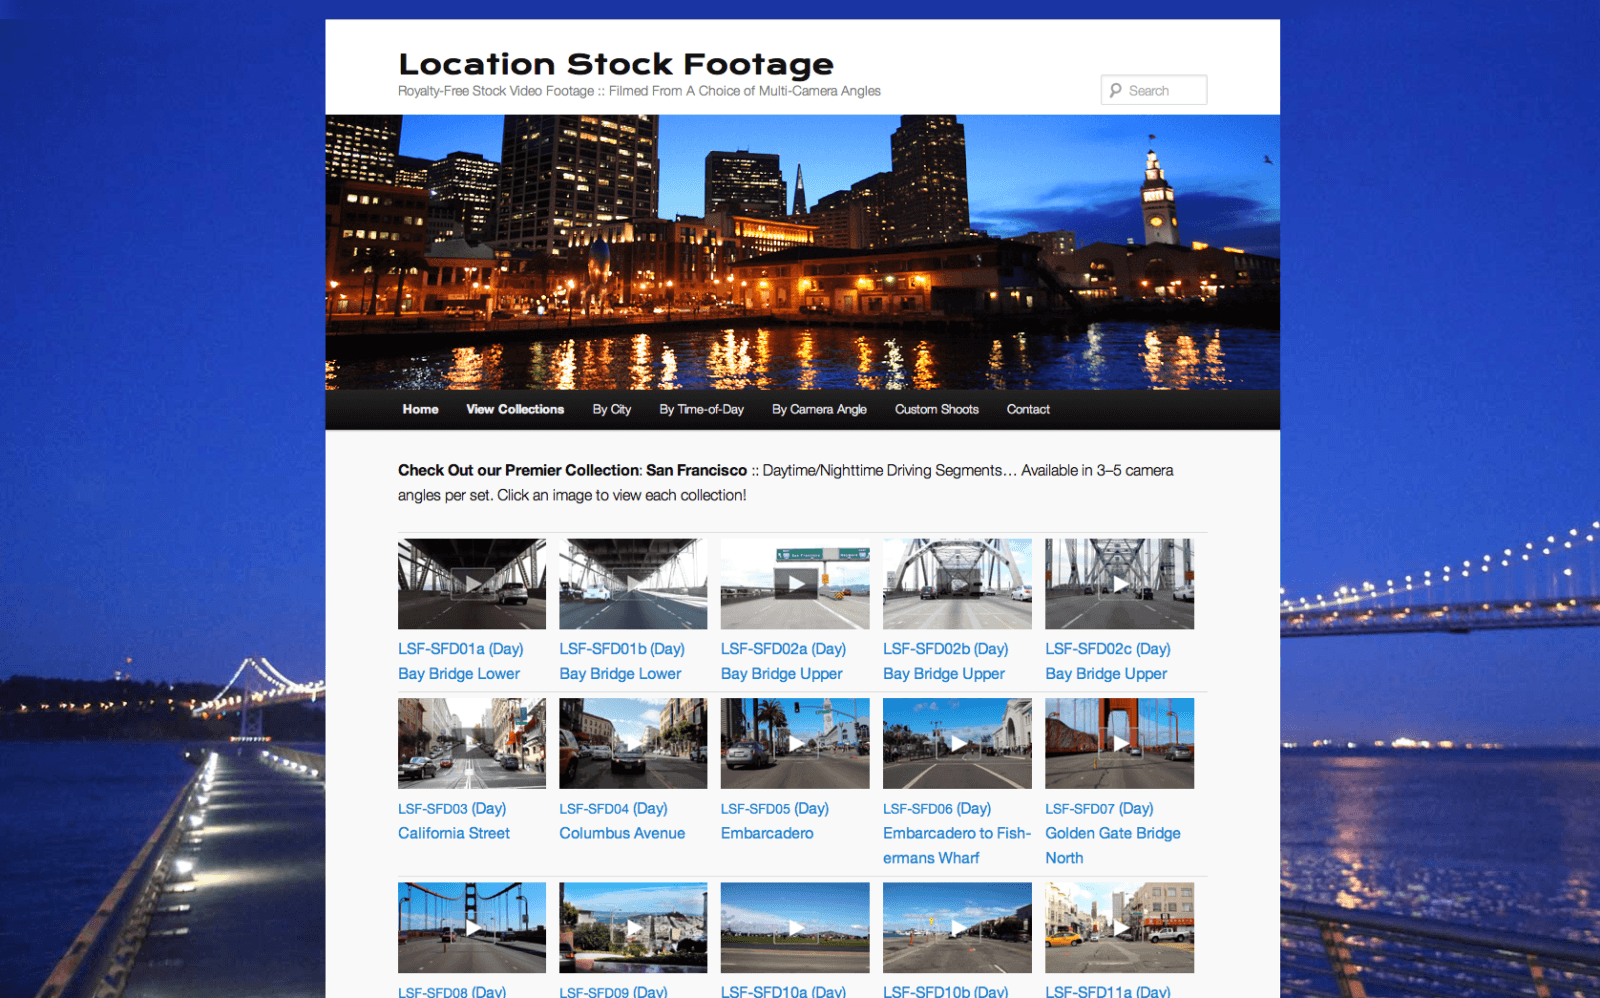 Location Stock Footage.com - Customized CMS Design for E-Commerce by Eric Scott (Day For Night)